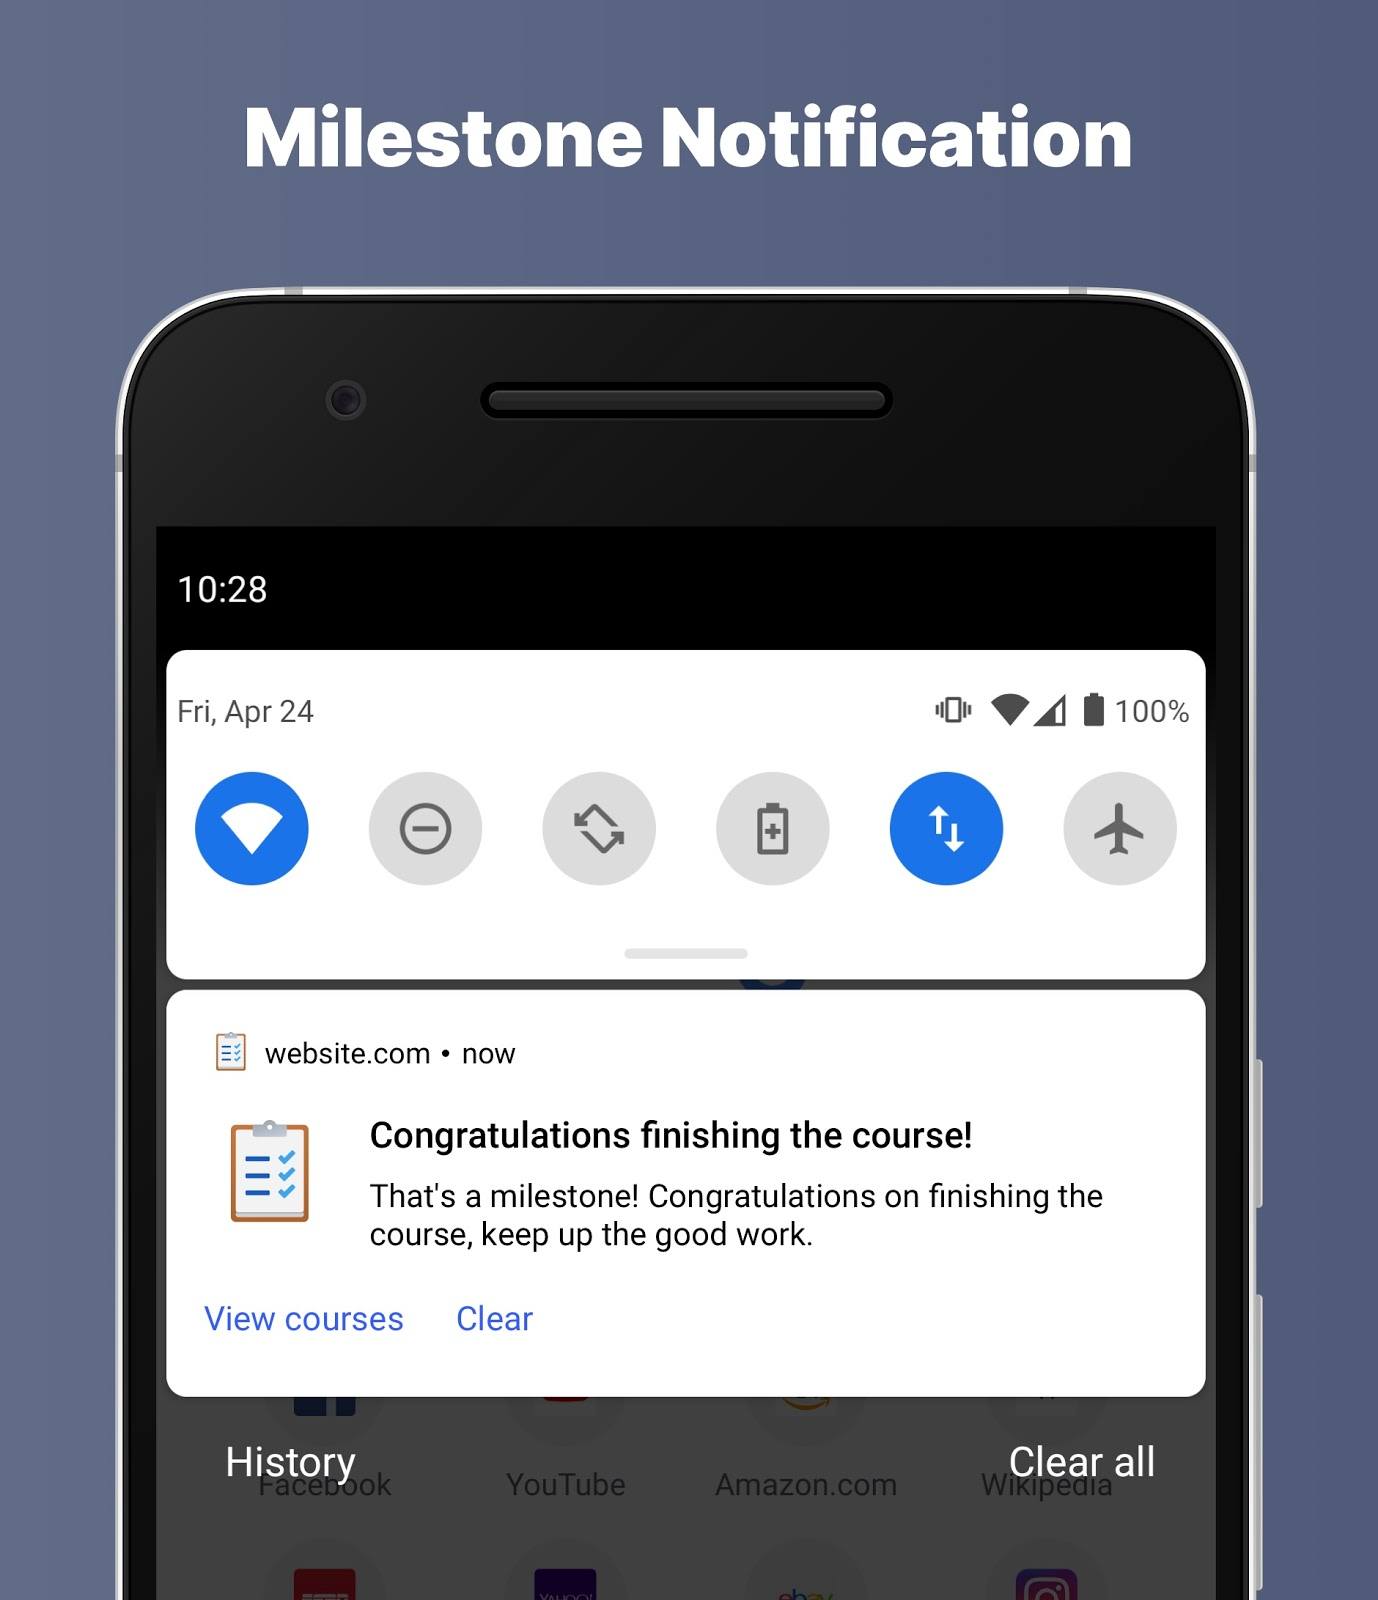 Example of a milestone push notification